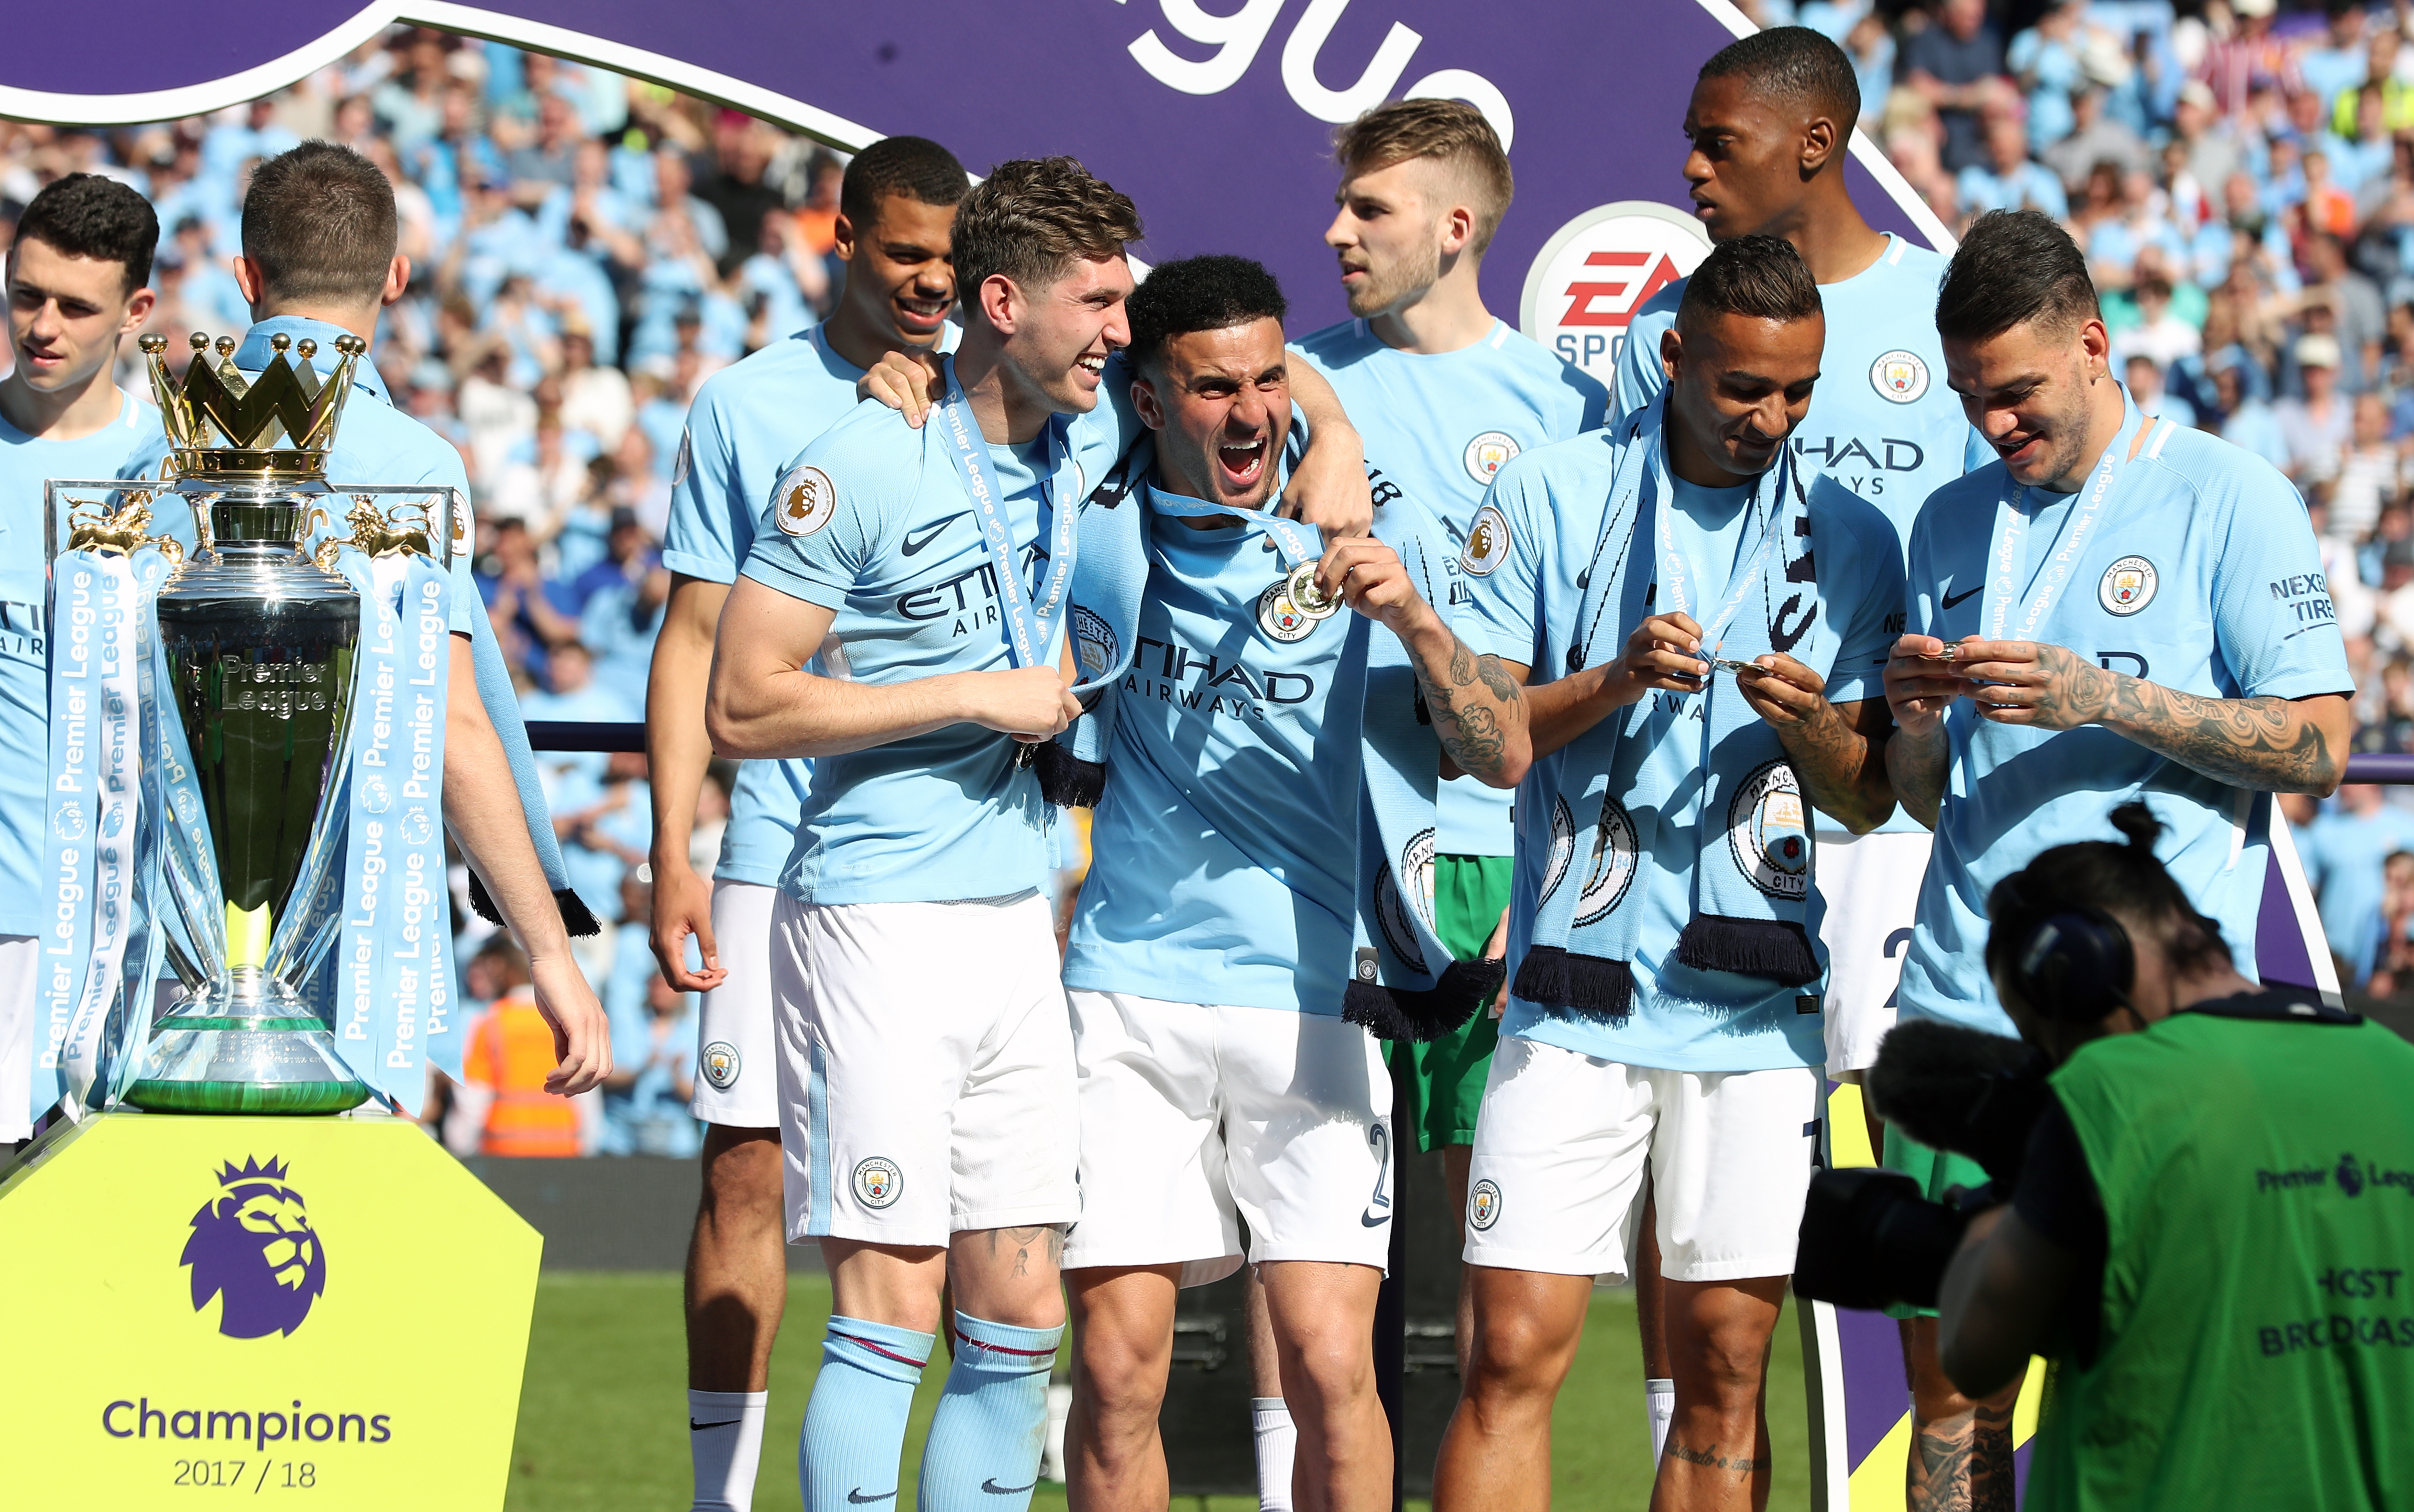 Kyle Walker, centre, won the Premier League in his first season with Manchester City